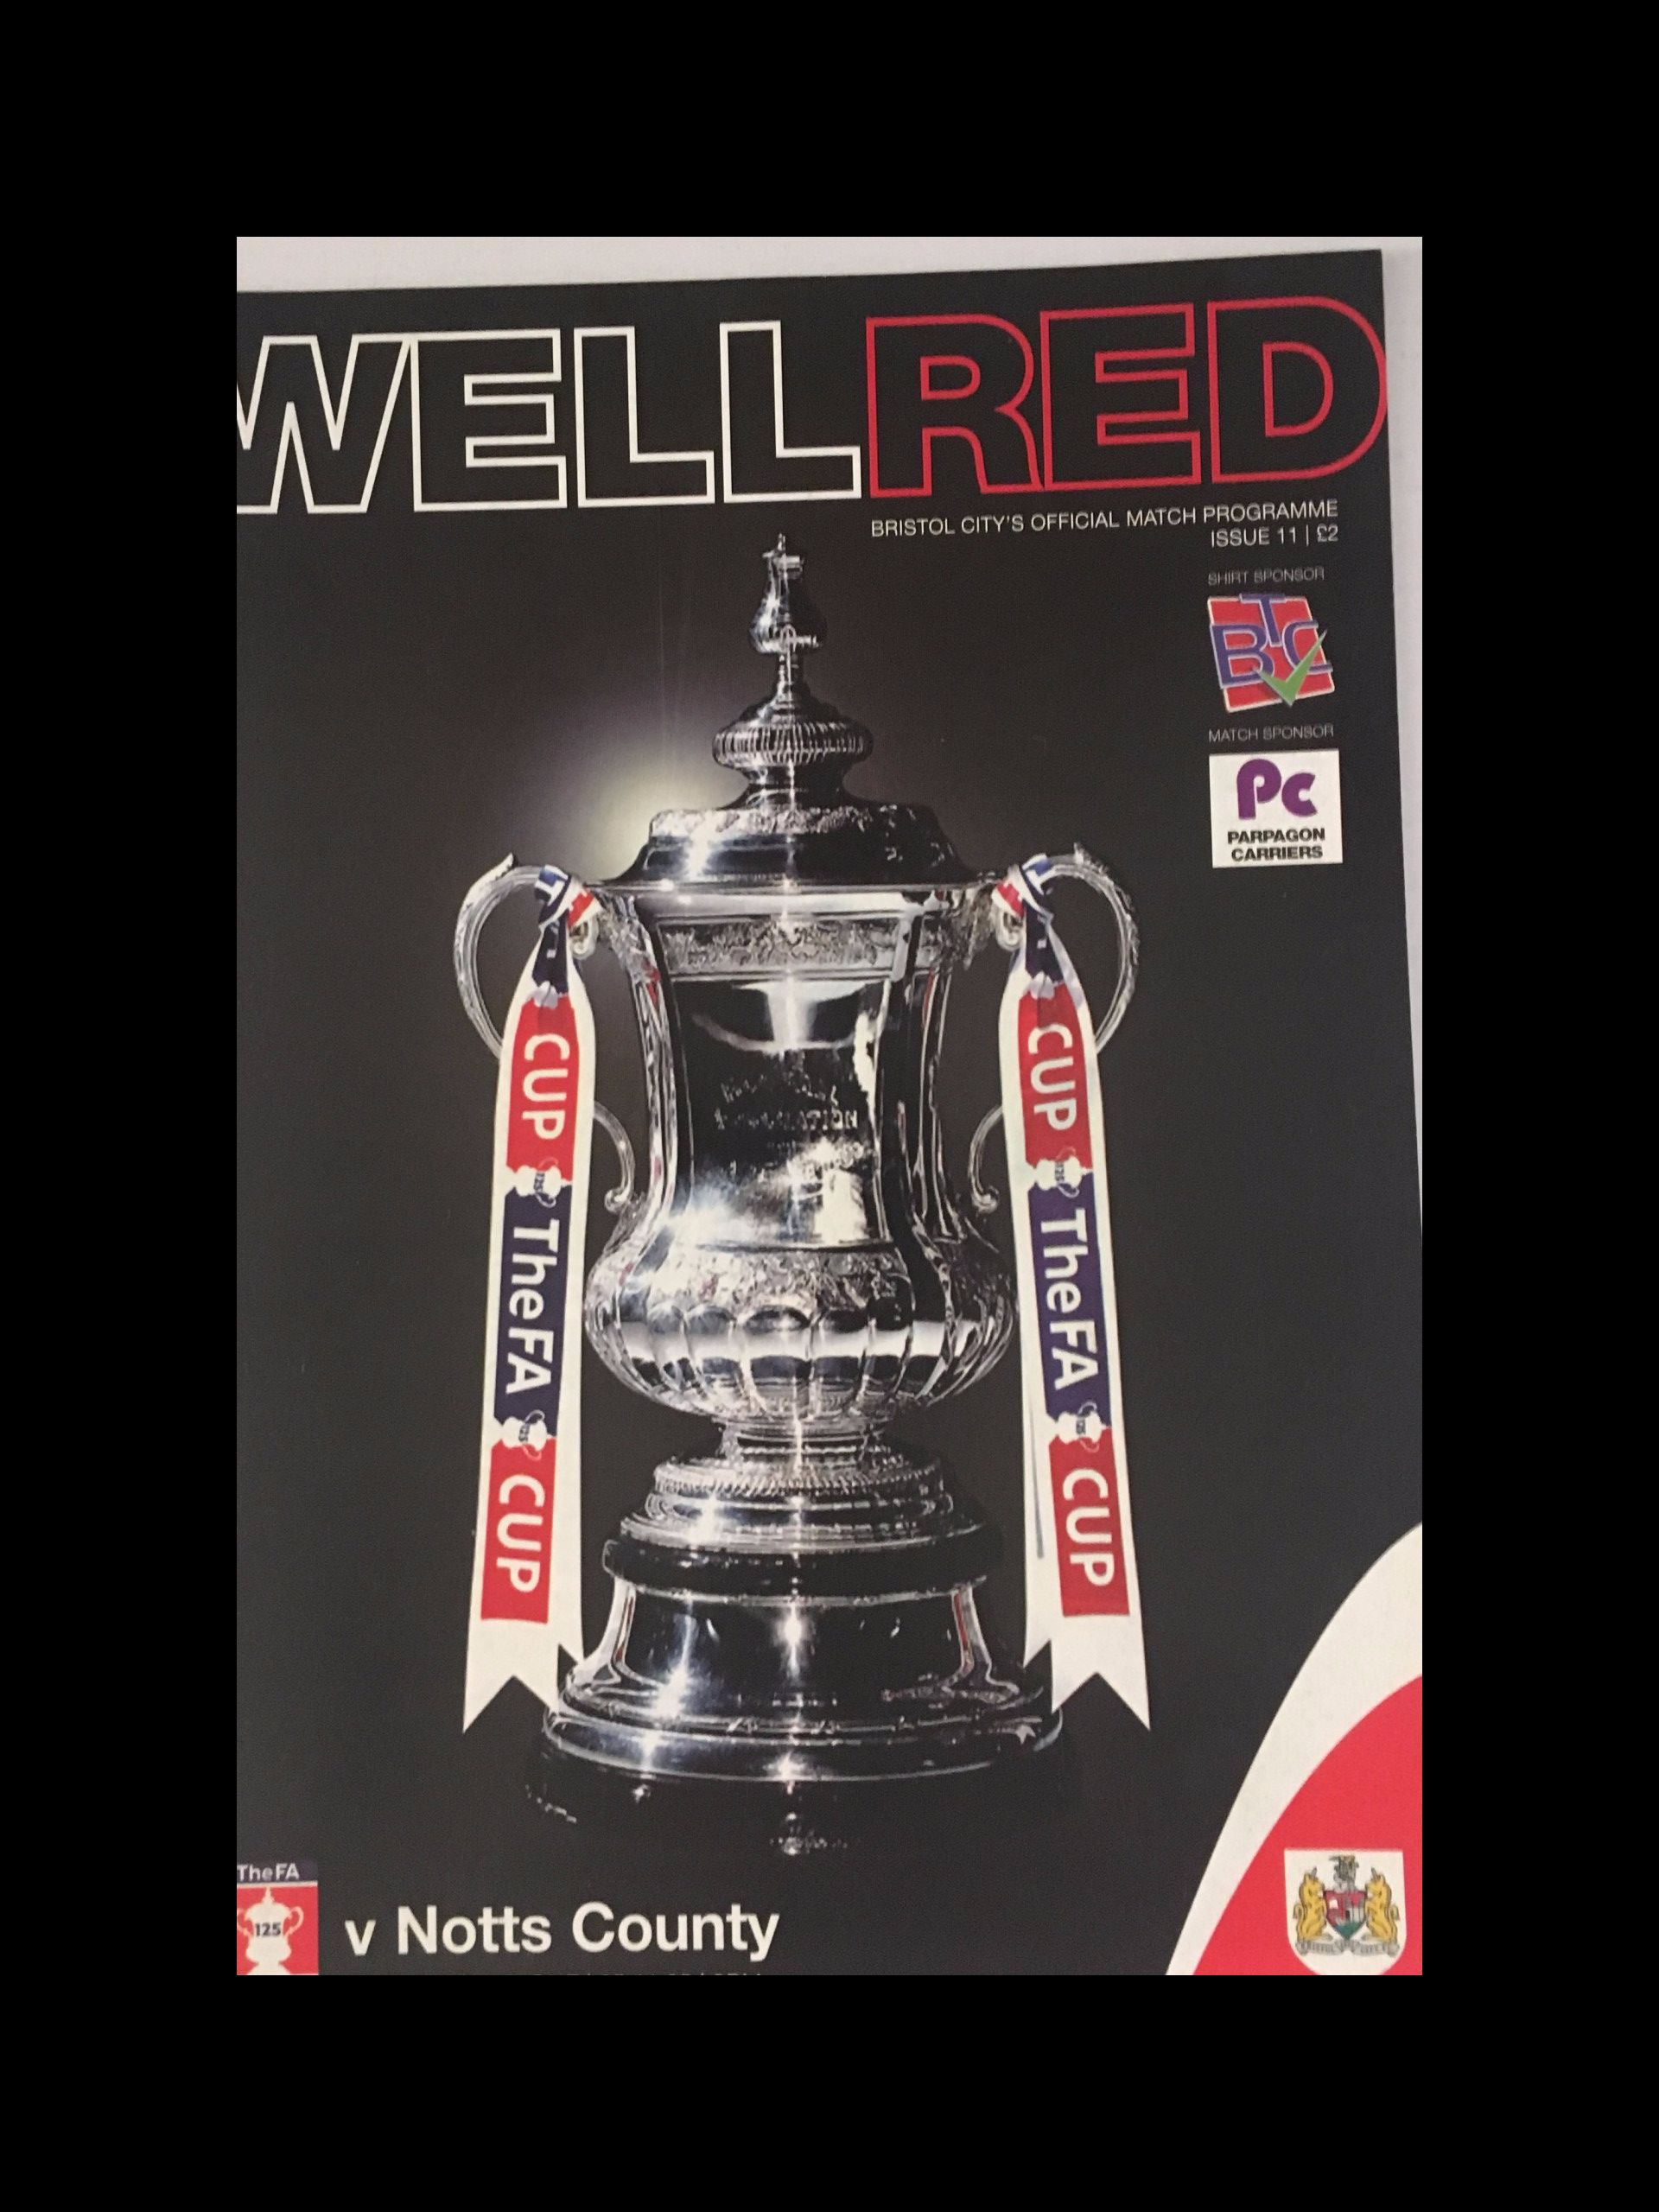 Bristol City v Notts County 05-11-2005 Programme